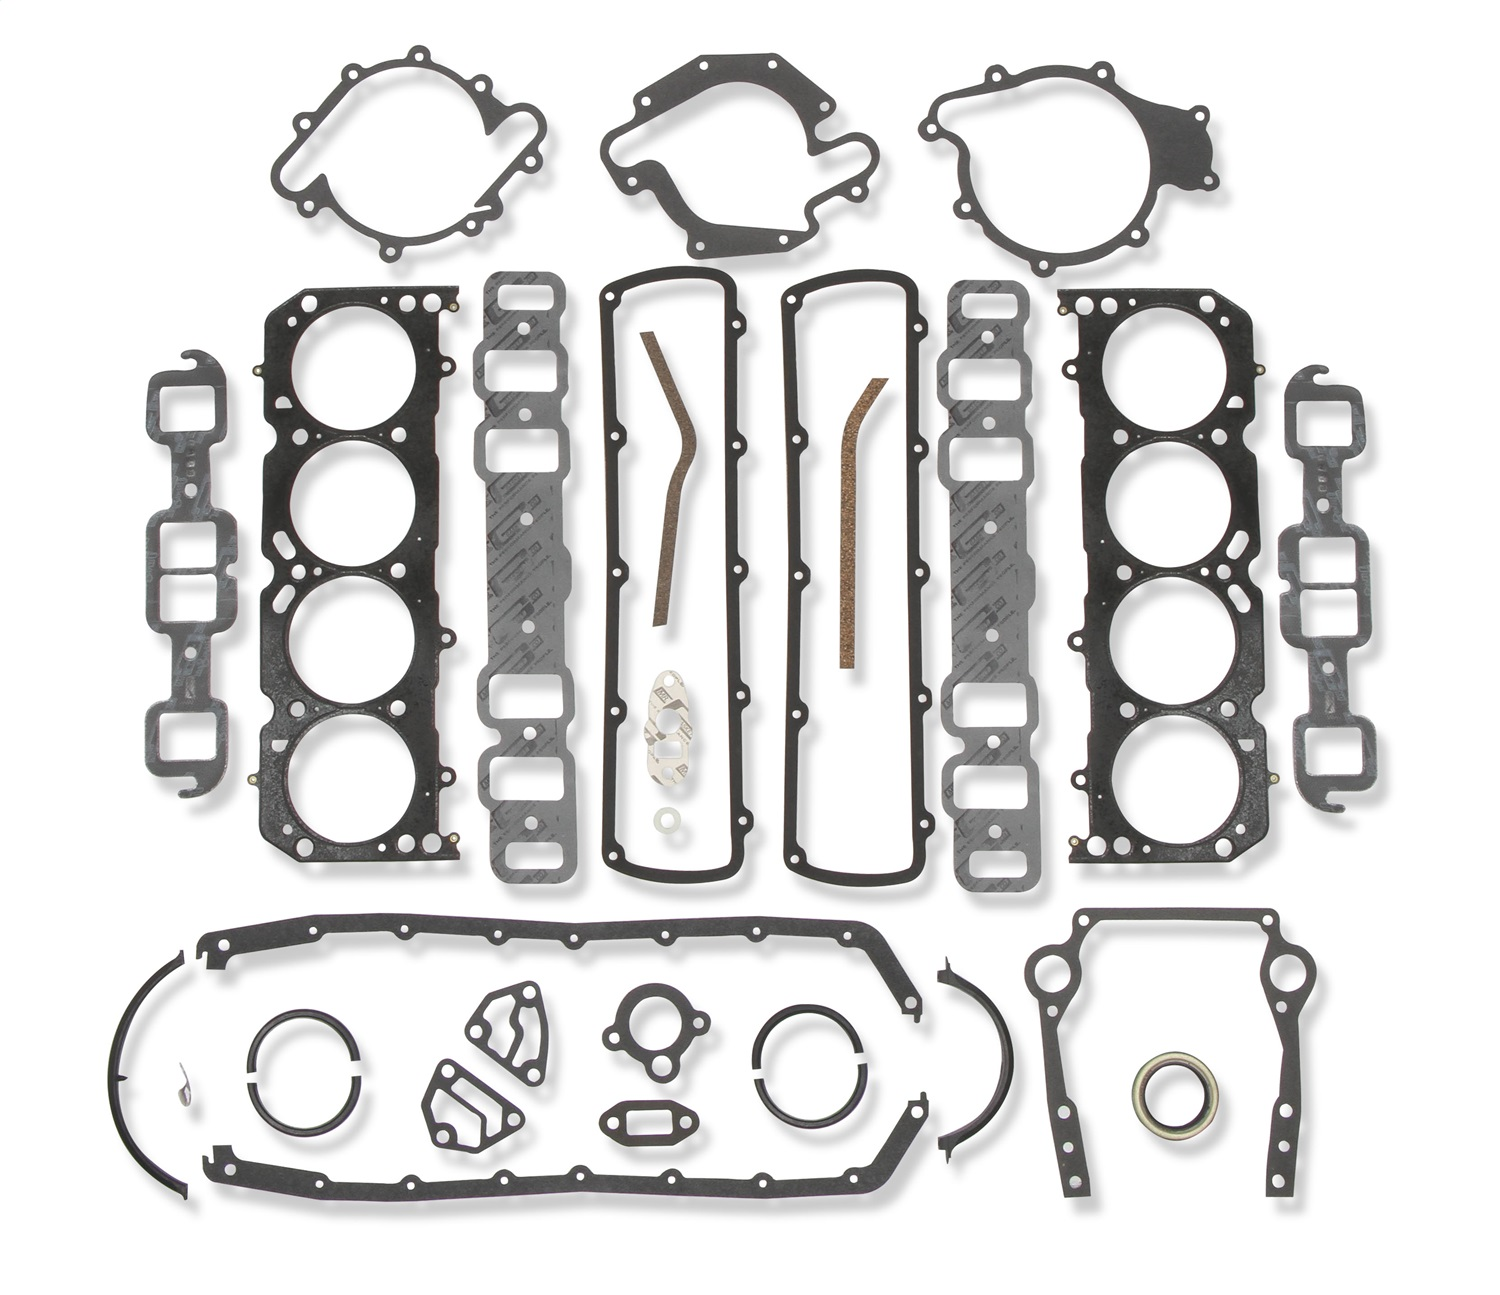 Mr Gasket G Overhaul Gasket Kit